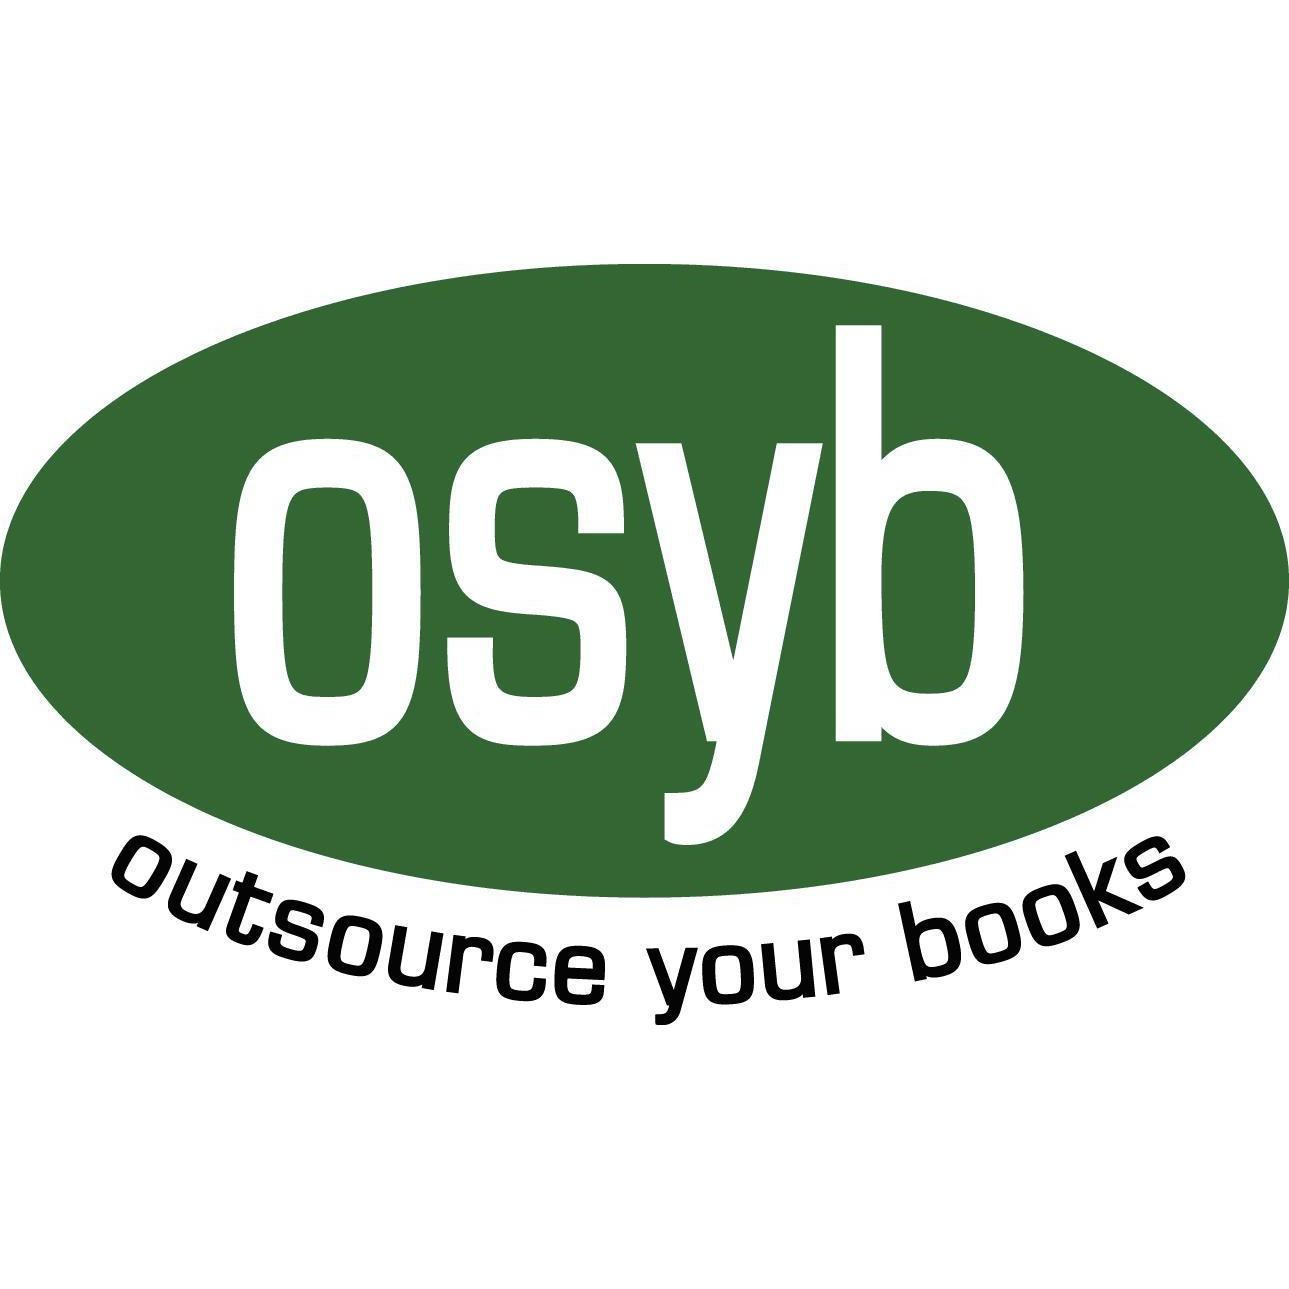 Bookkeeping Service in NY Garden City 11530 OutSource Your Books, LLC 100 Quentin Roosevelt Blvd. Suite 509 (516)393-5620